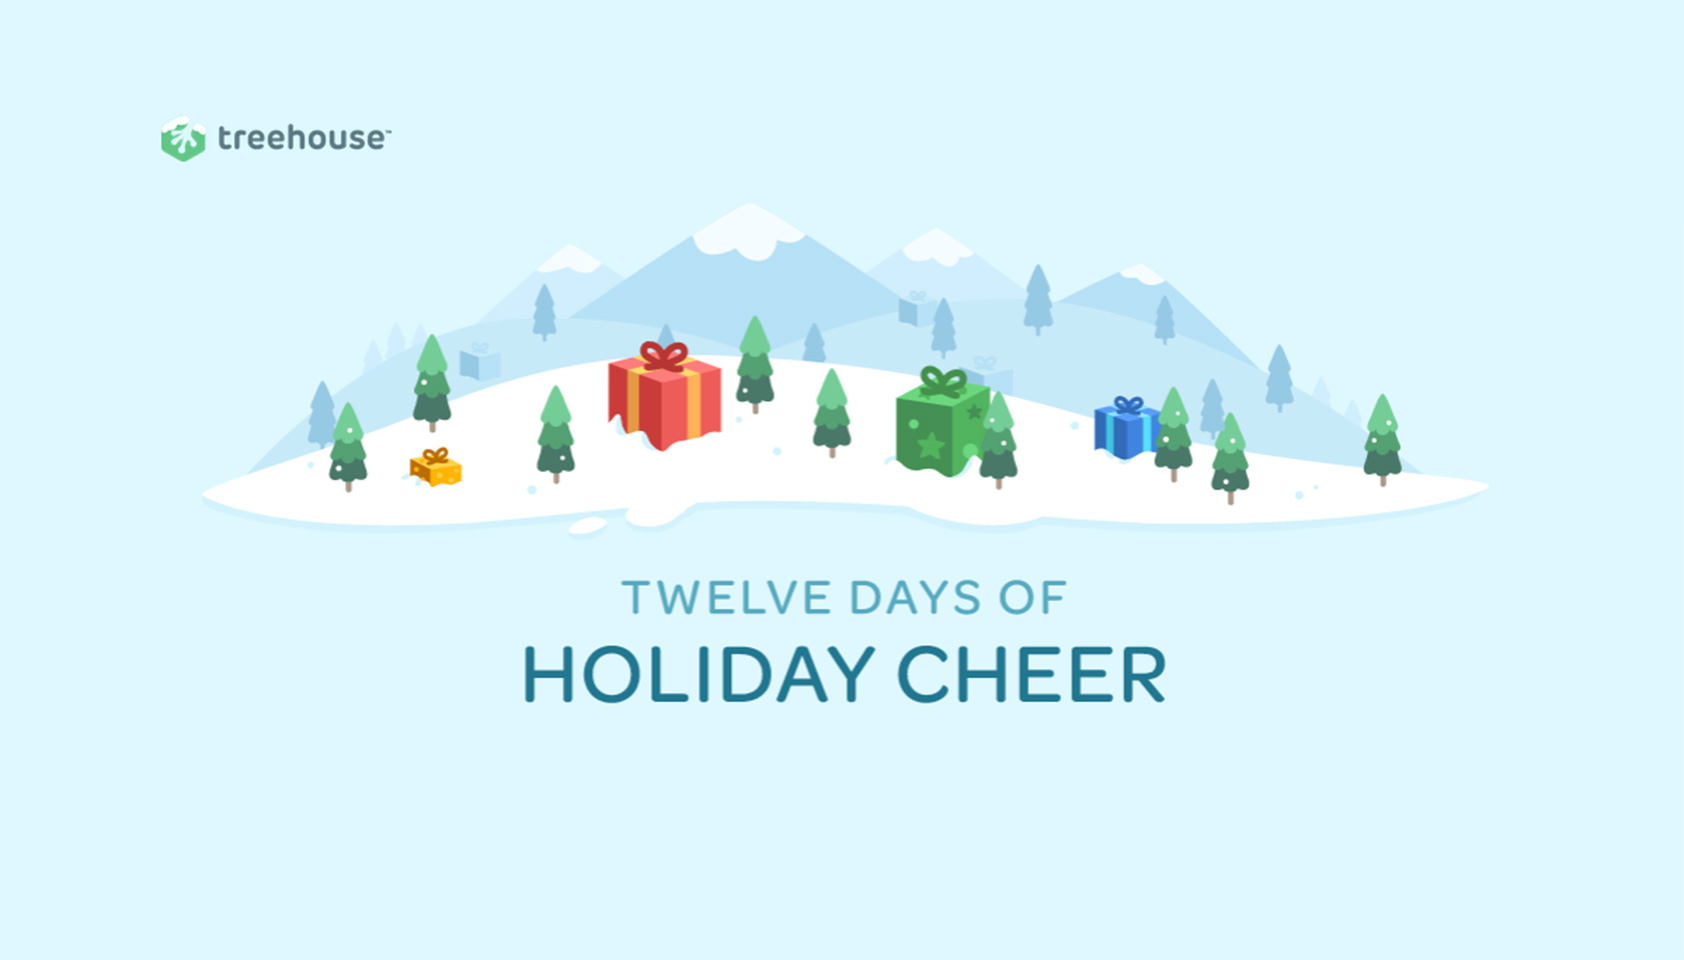 Giveaway: Treehouse's 12 days of holiday cheer